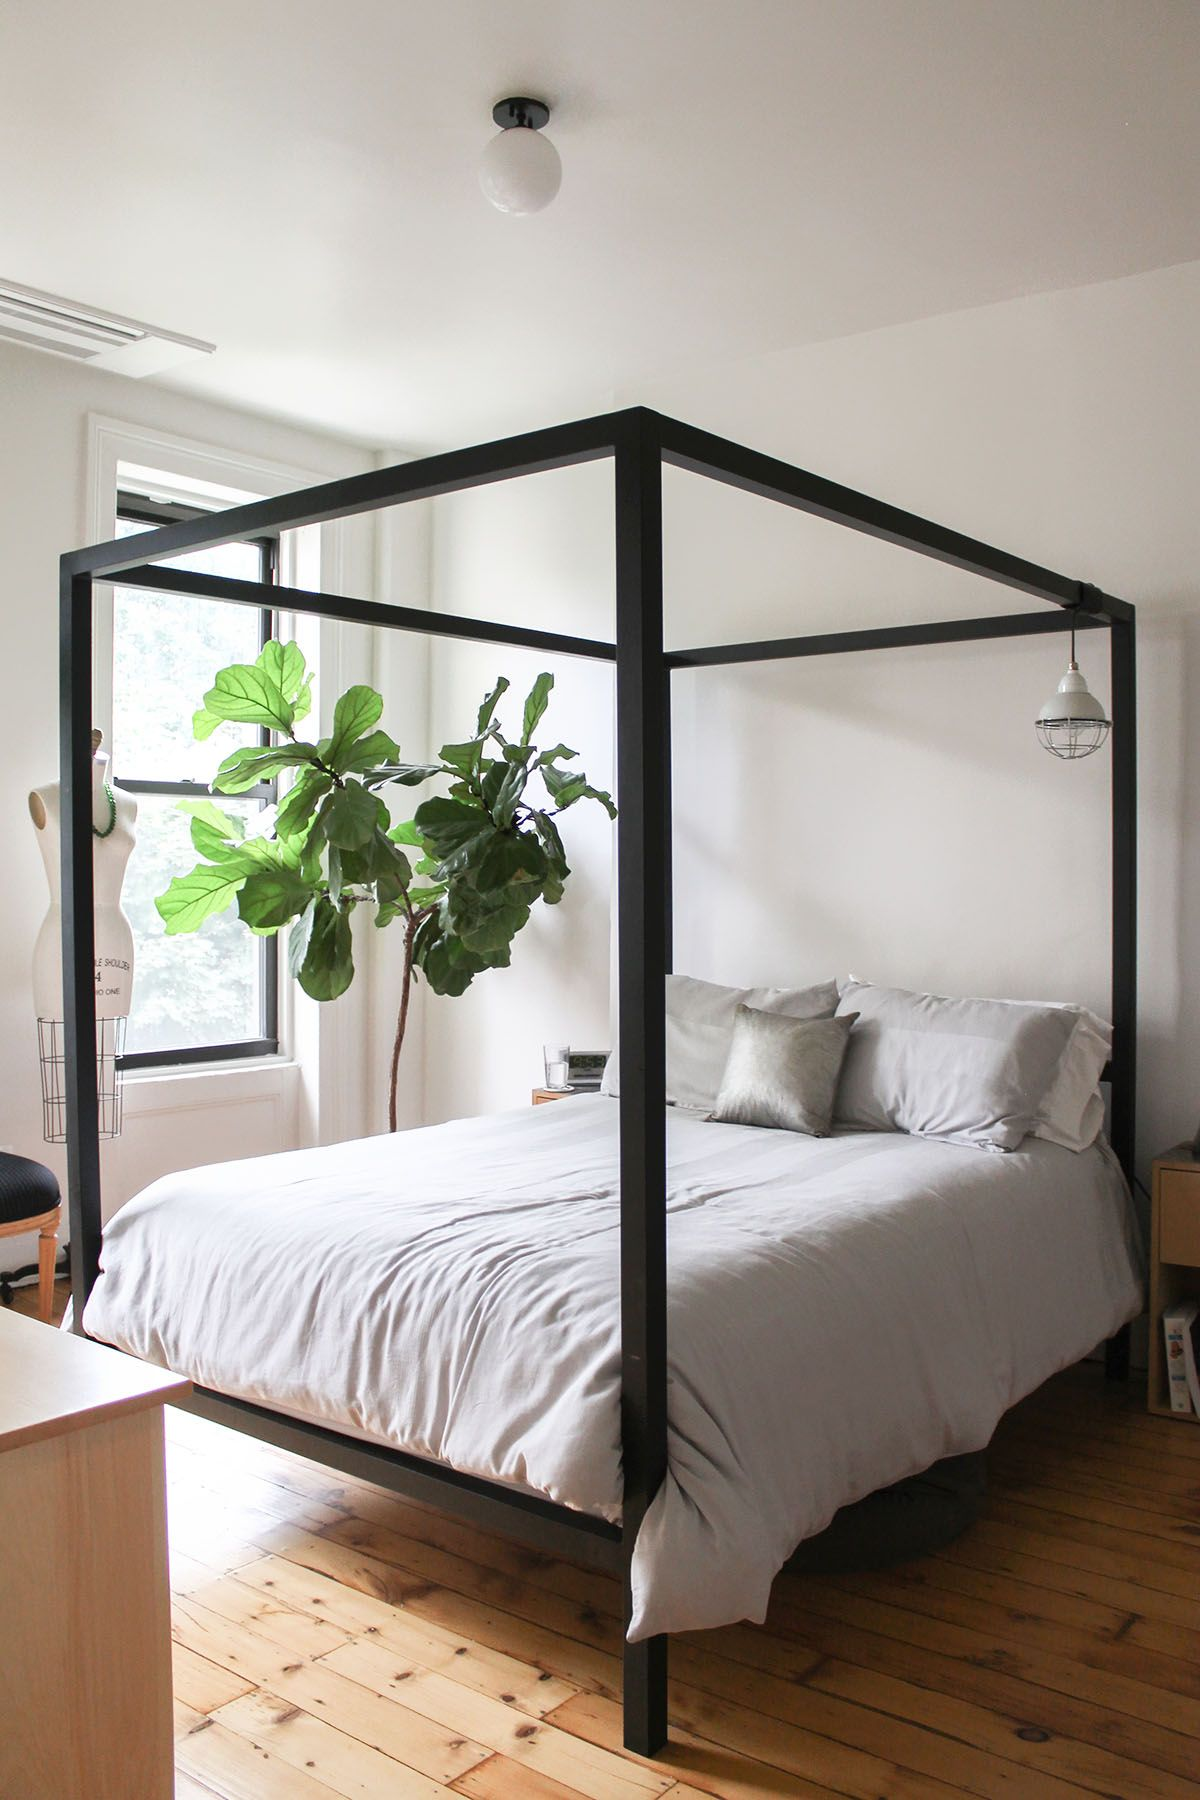 Townhouse Bedroom Ideas Black Bed Frame Canopy Bed Frame Black Canopy Beds Bedroom ideas black canopy